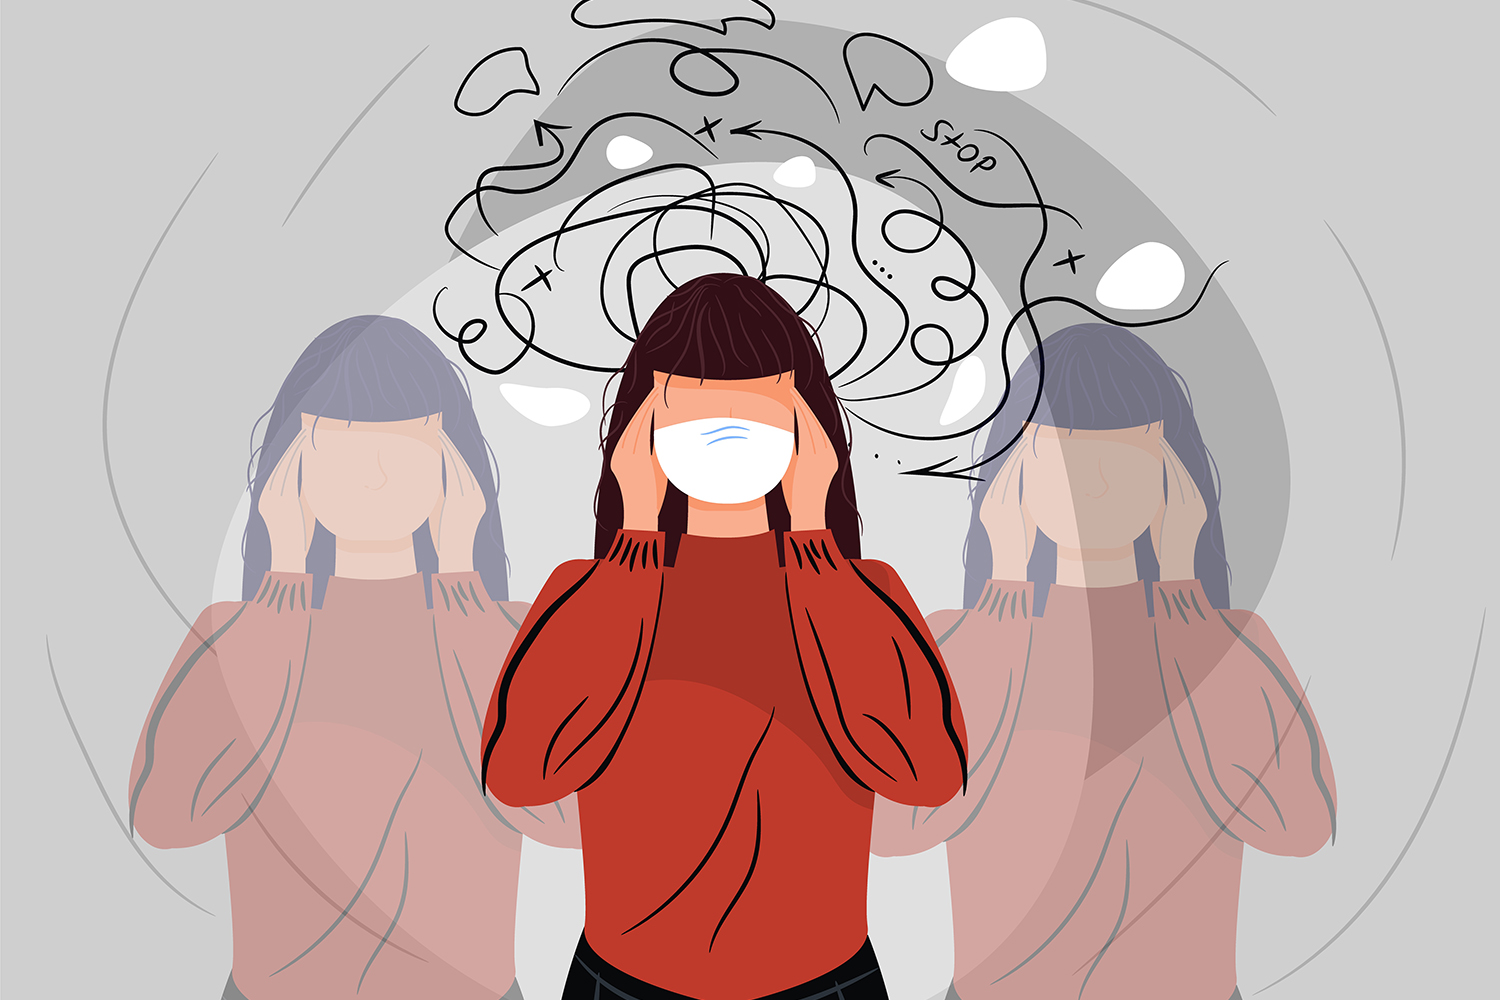 Graphic/Illustration of woman holding her temples.